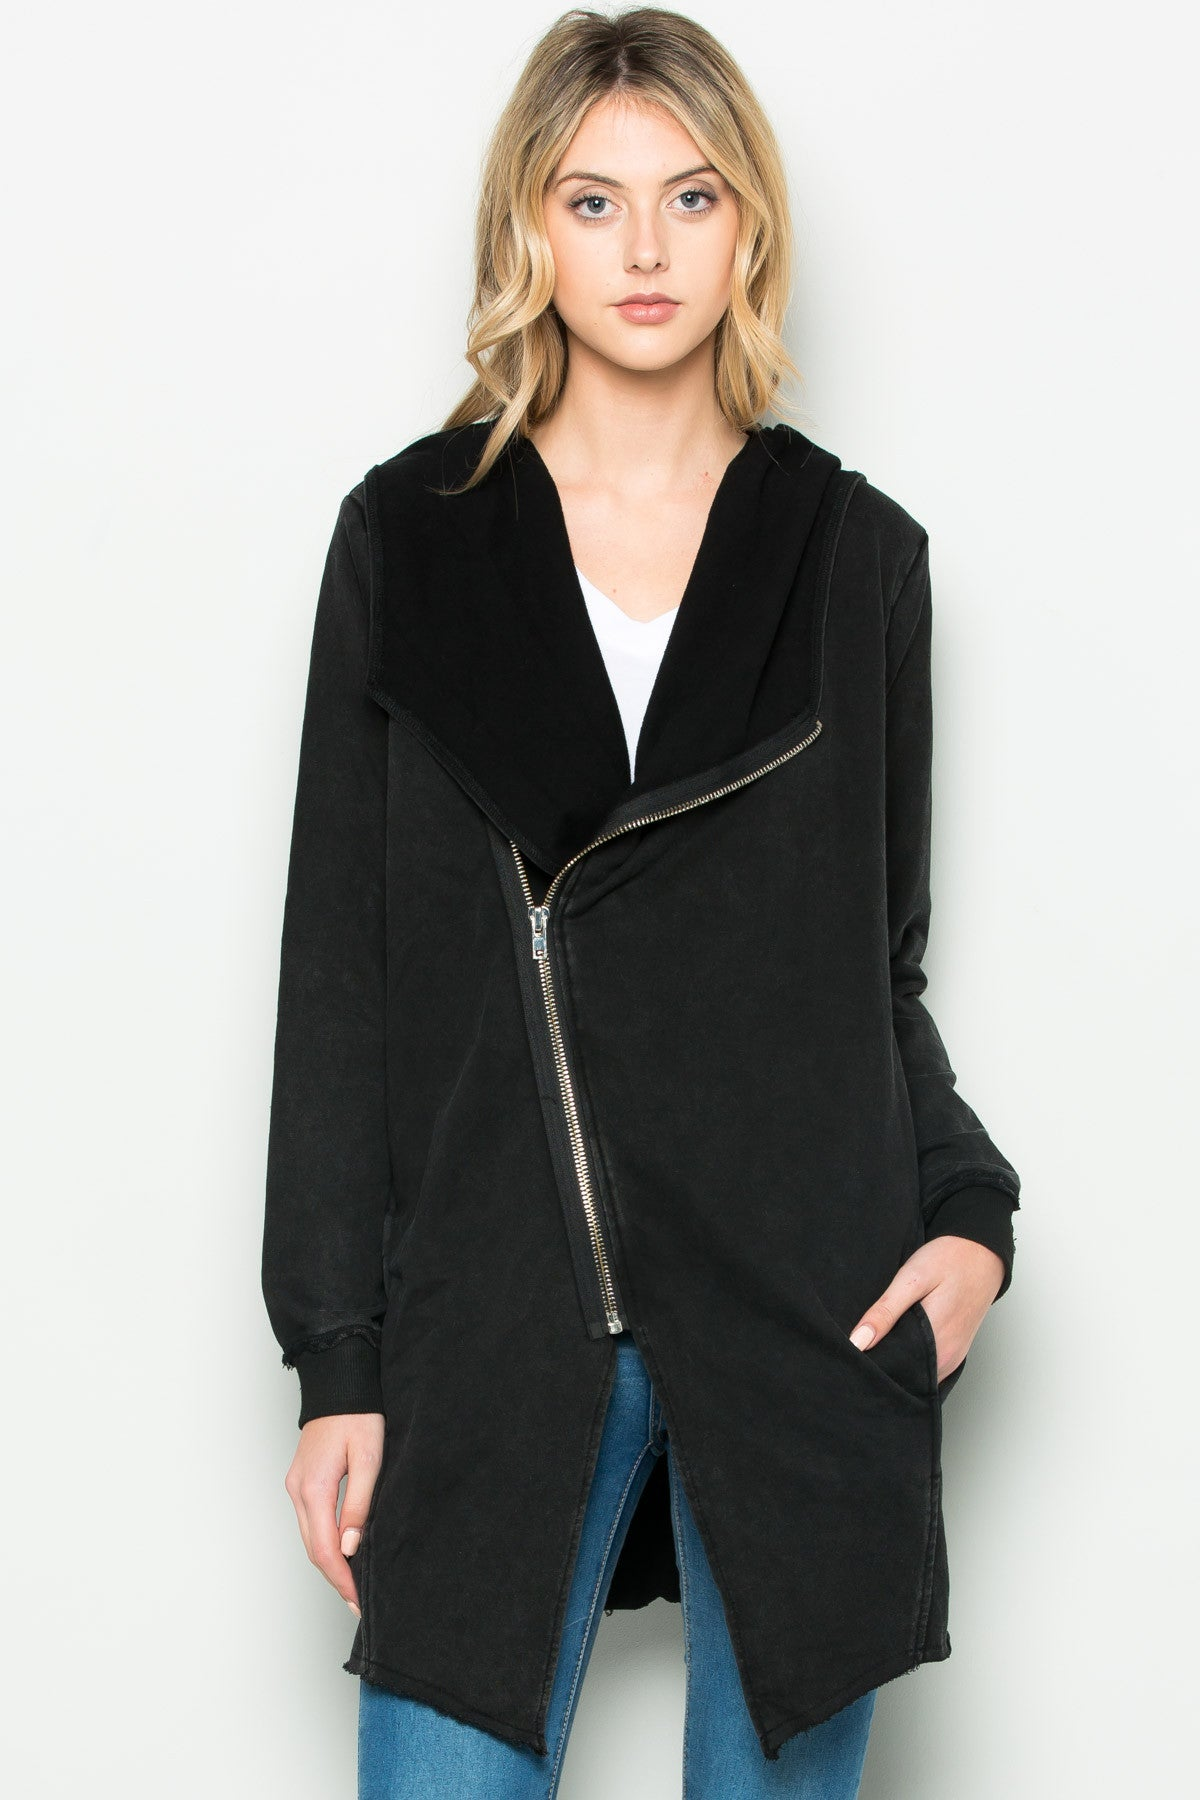 Hooded Asymmetric Zip Up Acid Wash Jacket in Black - Jacket - My Yuccie - 7